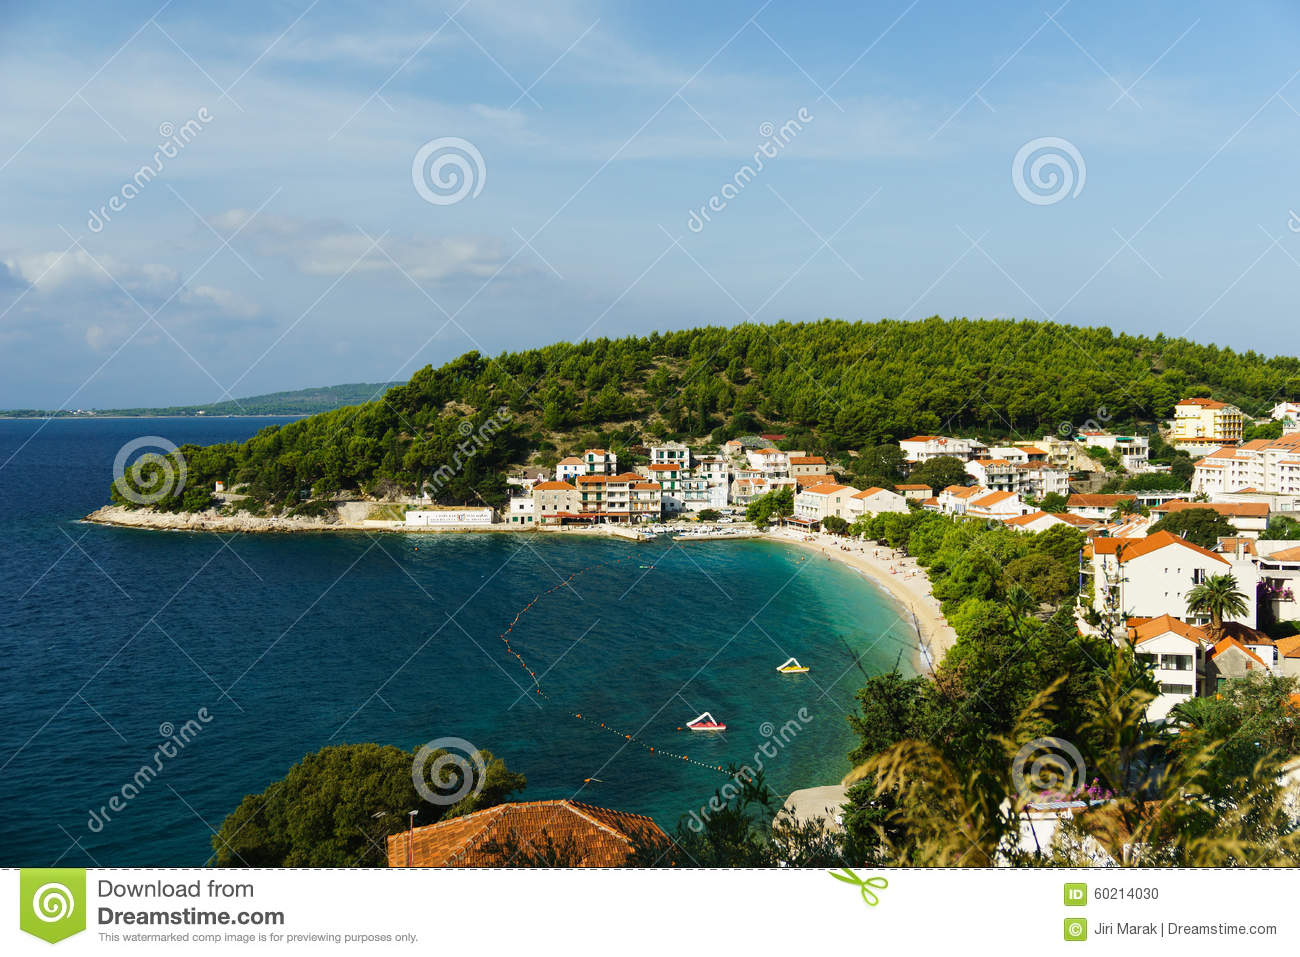 Drvenik-Donja Vala Stock Photo - Image: 60214030